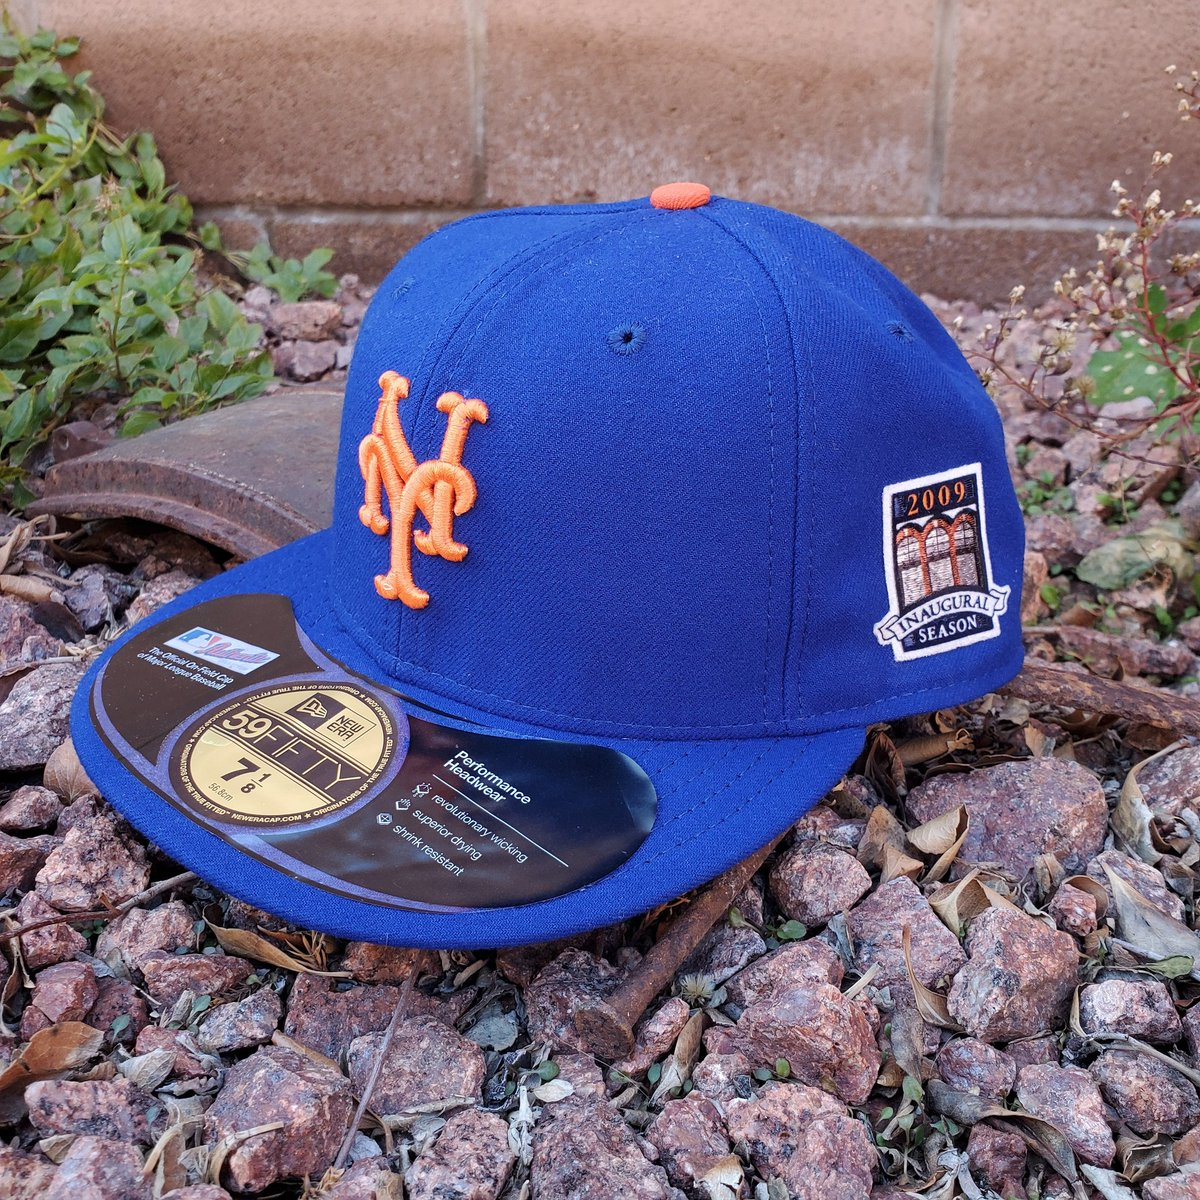 In 2009 the New York @Mets included an Inaugural patch which commemorated the start of a new chapter of their existence in Citi Field, leaving Shea Stadium after 47 seasons.  #Mets #NewYork #LGM #NYM #Baseball #MLB #NewEra #NewEraCap #Fitted #FittedOfTheDay #FOTD #59Fifty